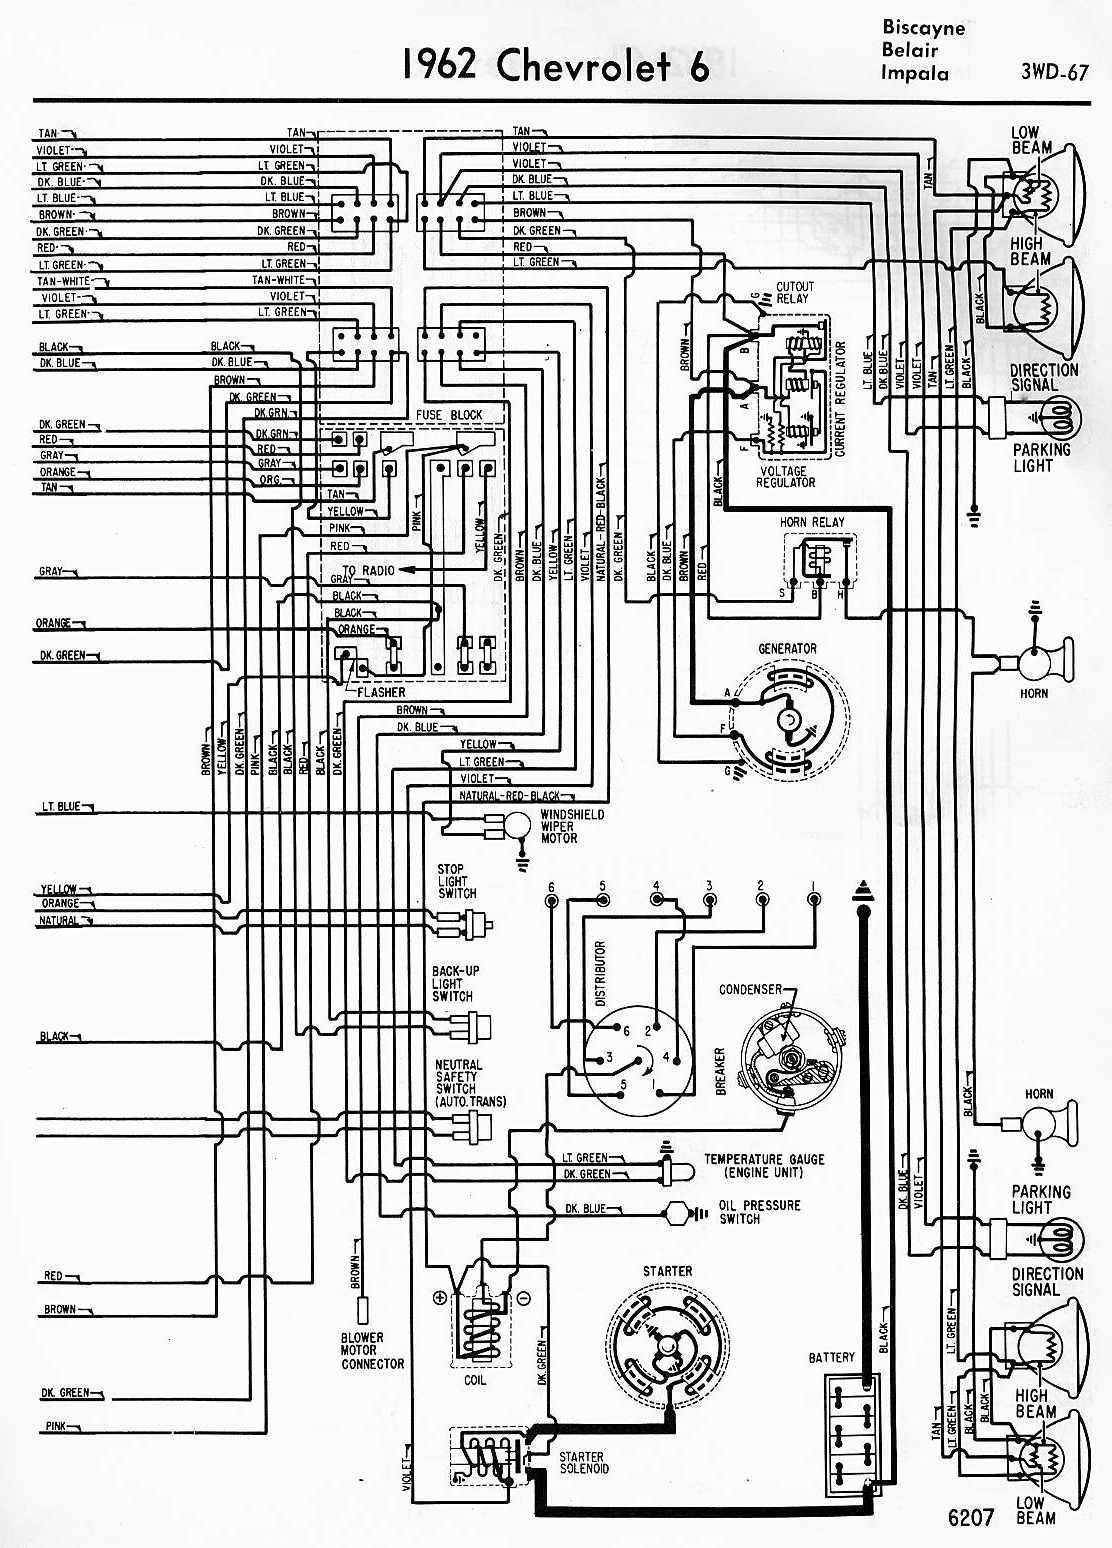 1961 Chevy Wagon Wiring Diagram Great Installation Of 1970 Chevrolet Nova 1962 Harness Third Level Rh 1 3 11 Jacobwinterstein Com